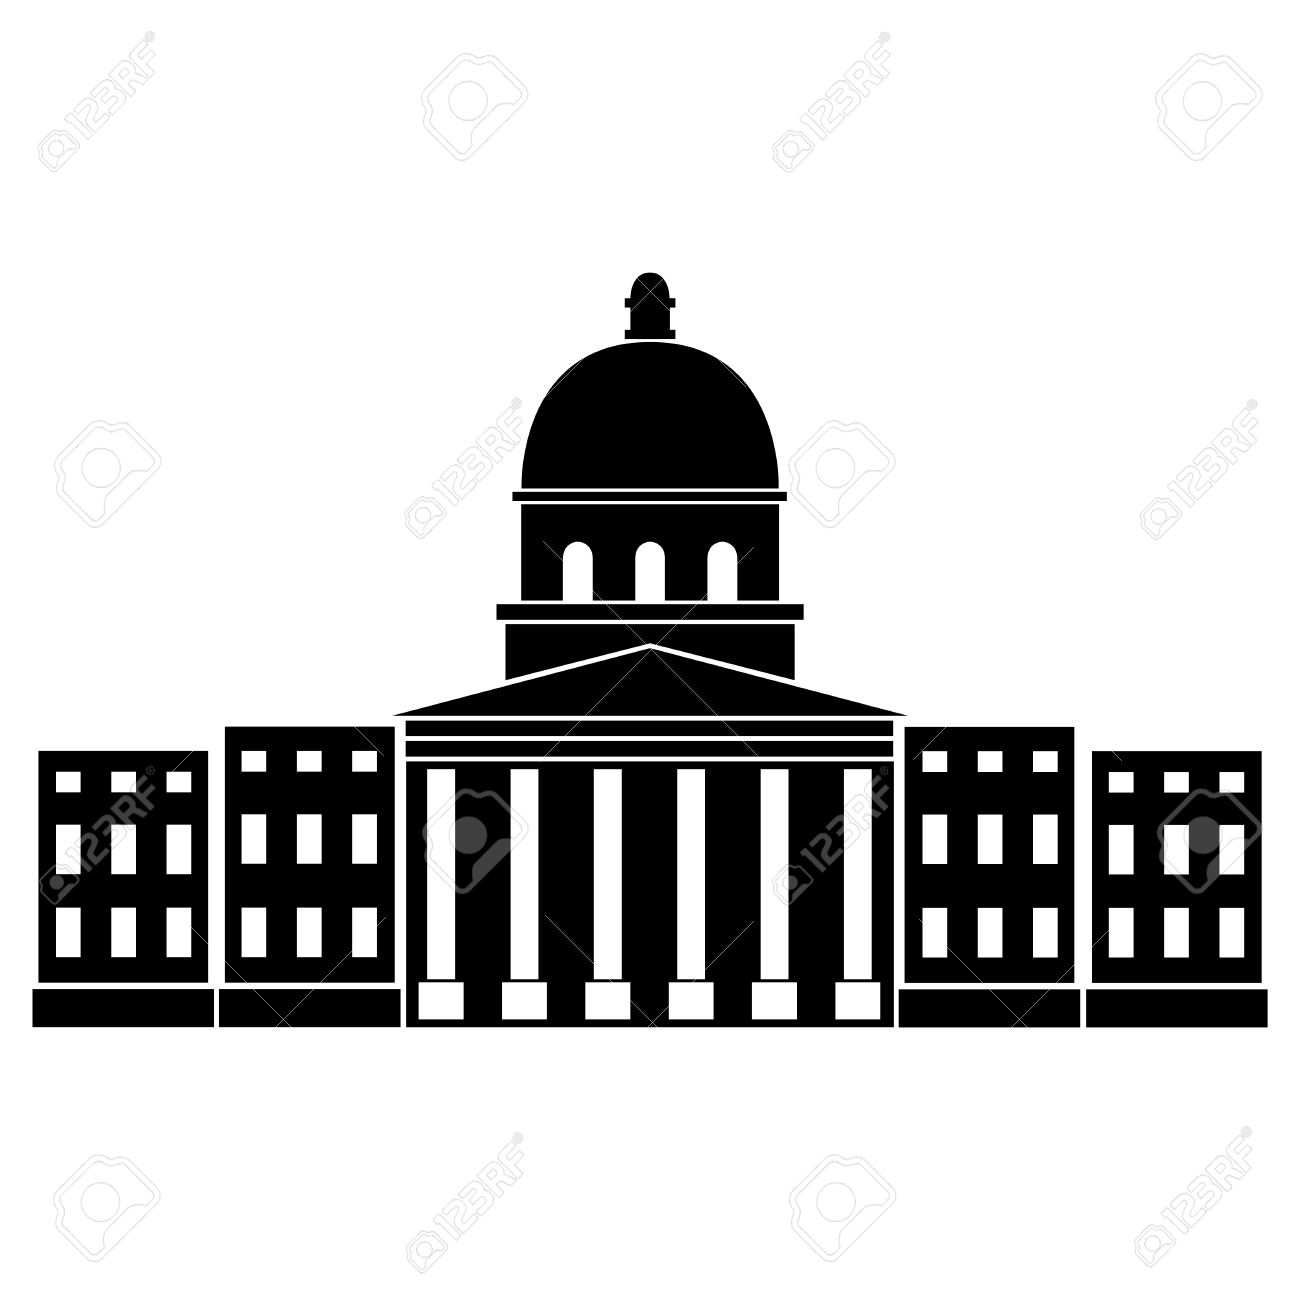 Vector Illustration Of Imperial War Museum Of London Royalty Free.